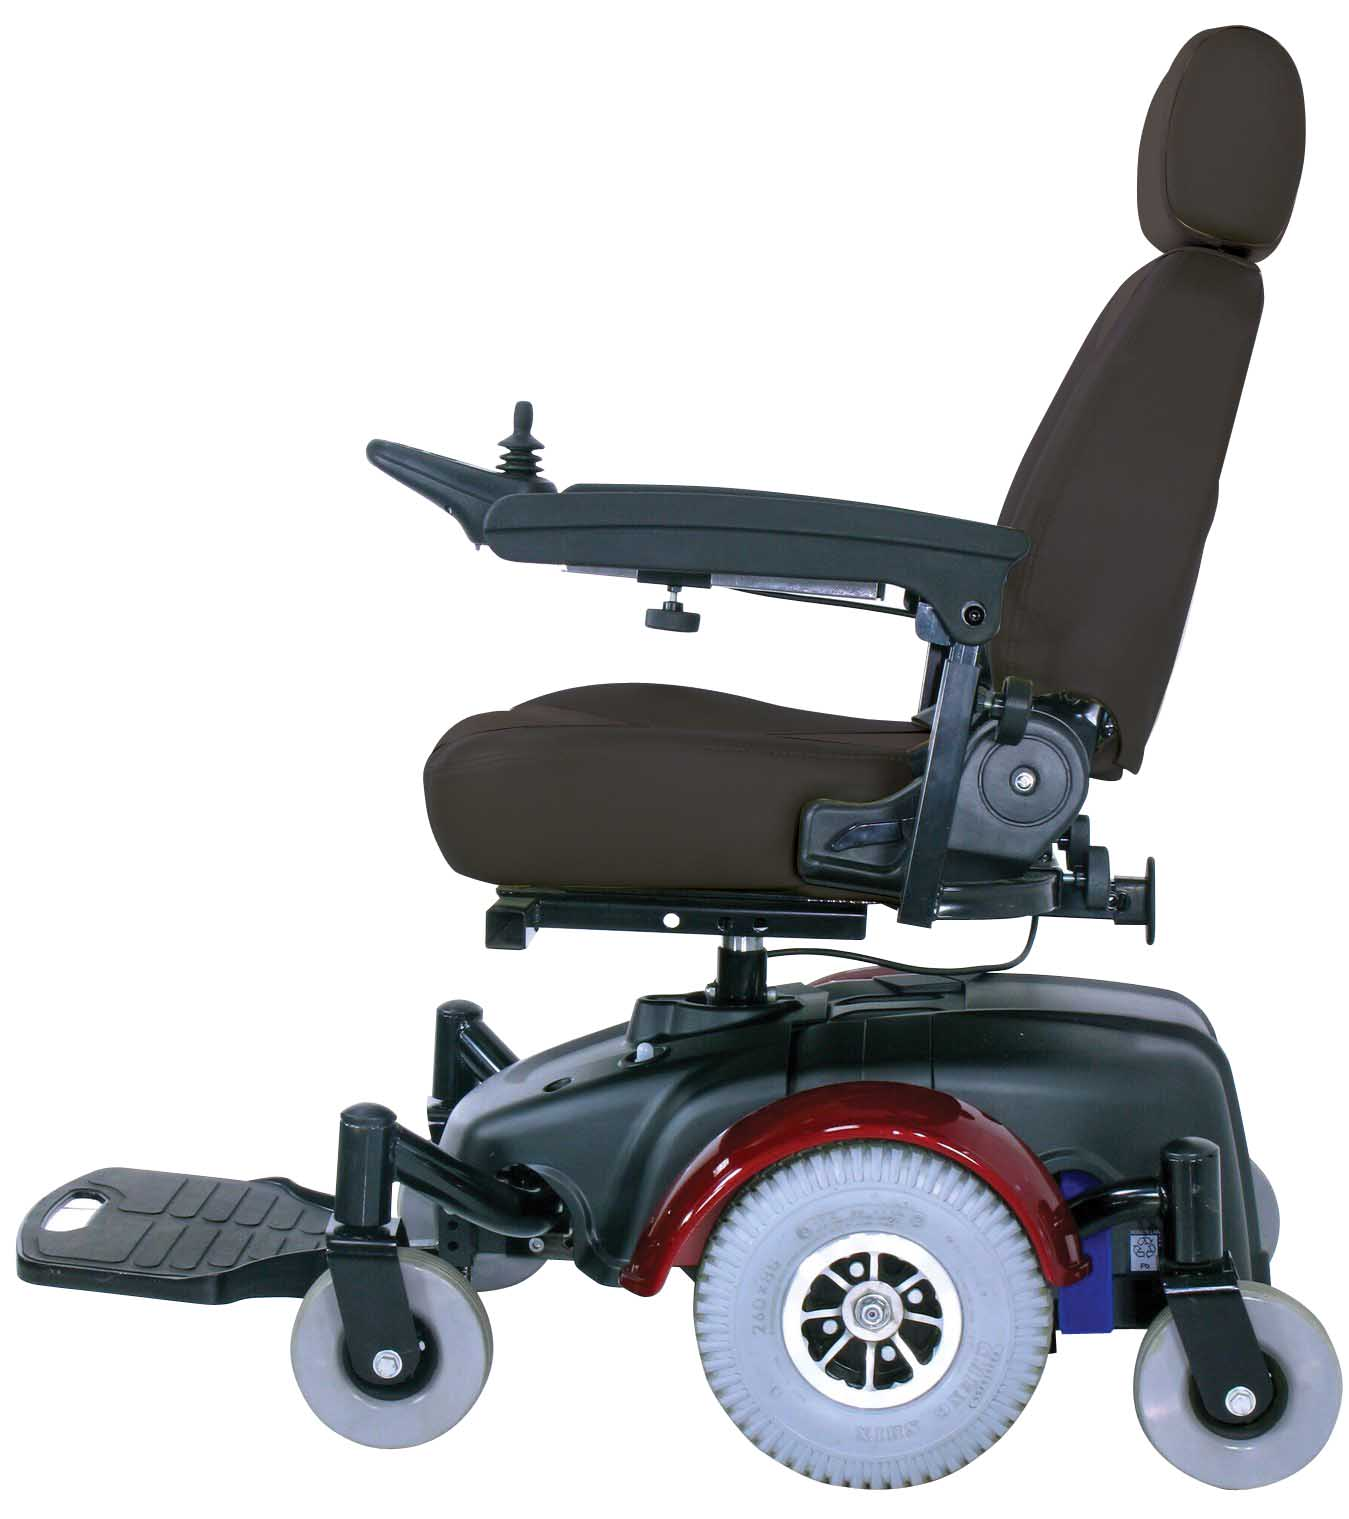 "Image EC Mid Wheel Drive Power Wheelchair 20"" - 2800ecbu-rcl-20-powerchair2800ecbu-rclb.jpg"